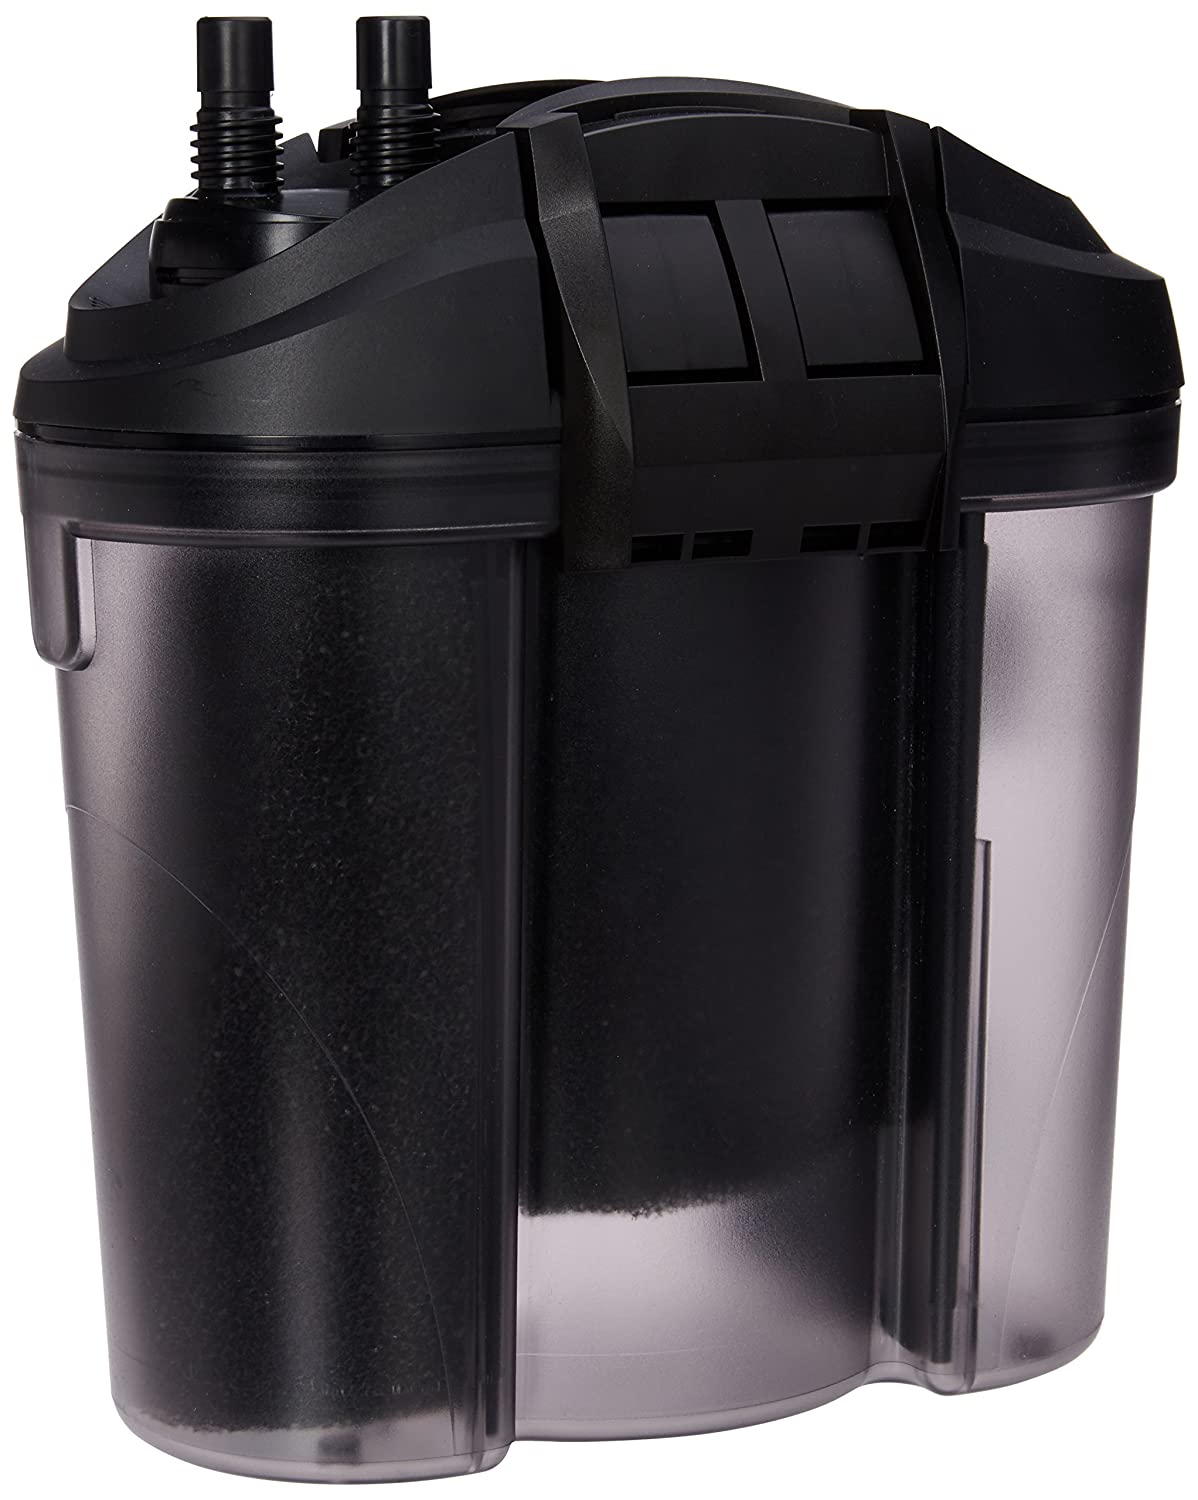 Zoo Med 78057 Macro External Canister Filter, 50 gallon by Zoo Med B00AA4ZUYM